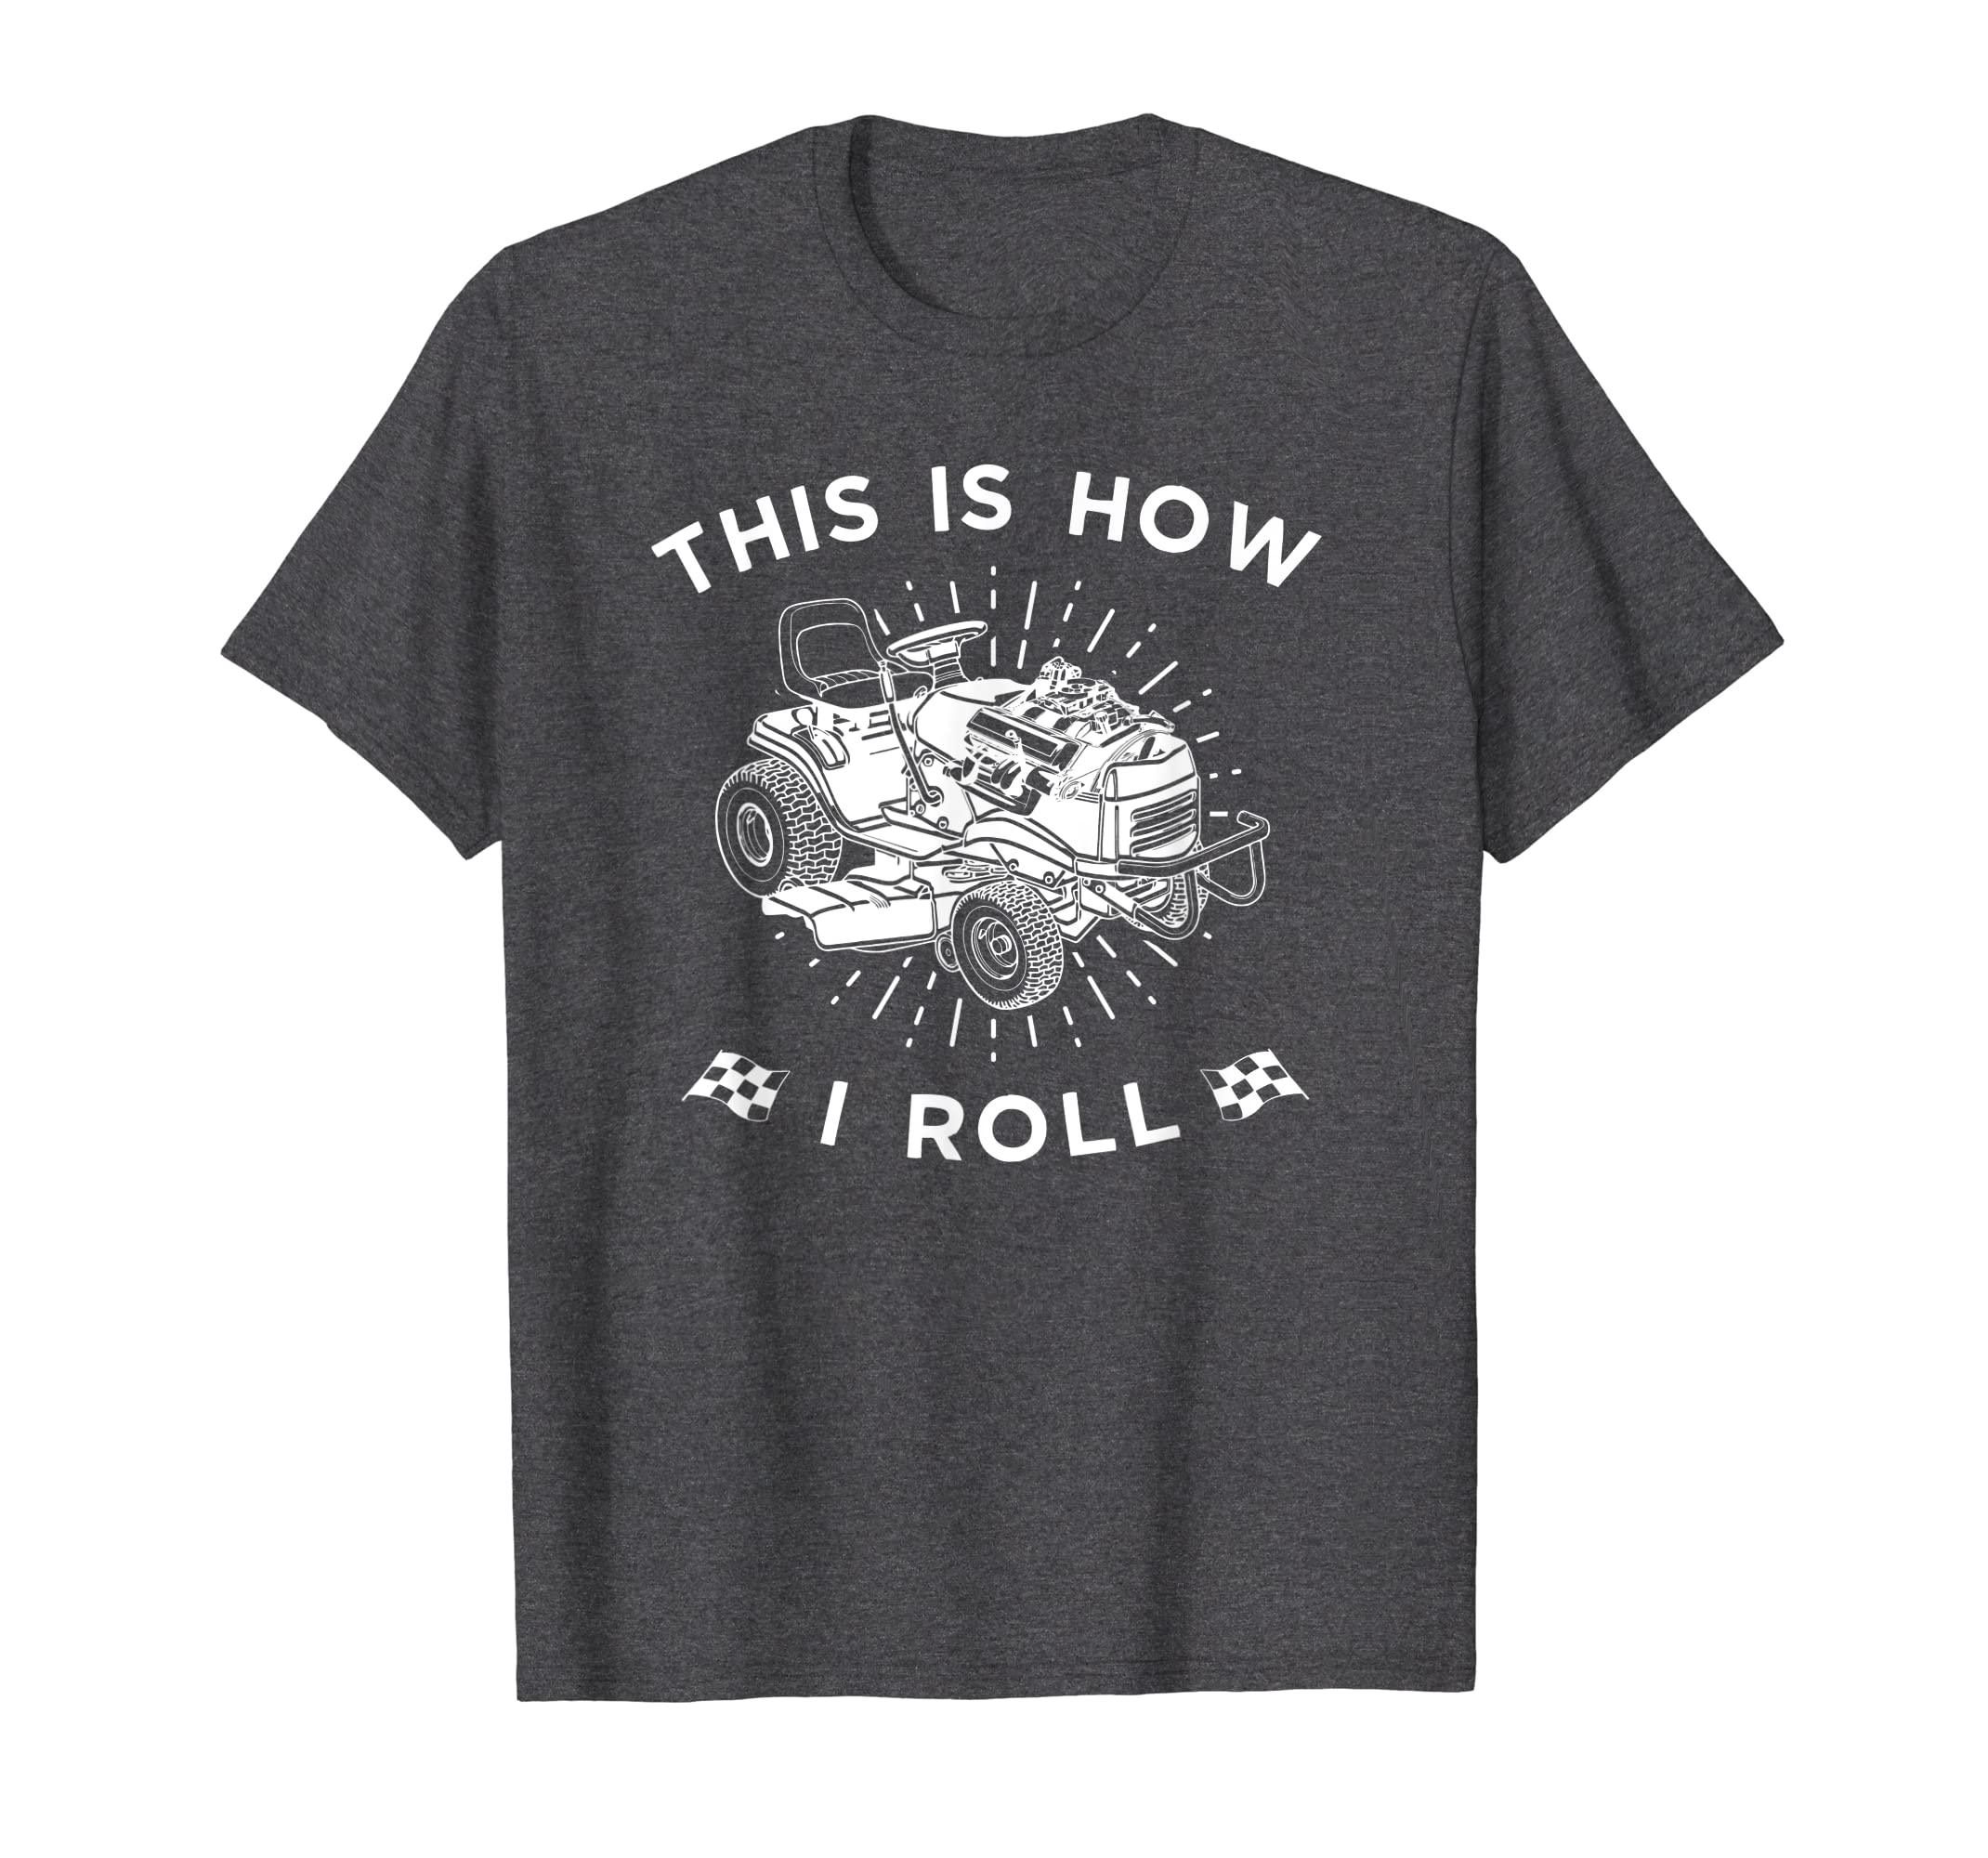 f3d875cf Amazon.com: This Is How I Roll Lawn Mower T-Shirt, Lawnmower Racing Tee:  Clothing